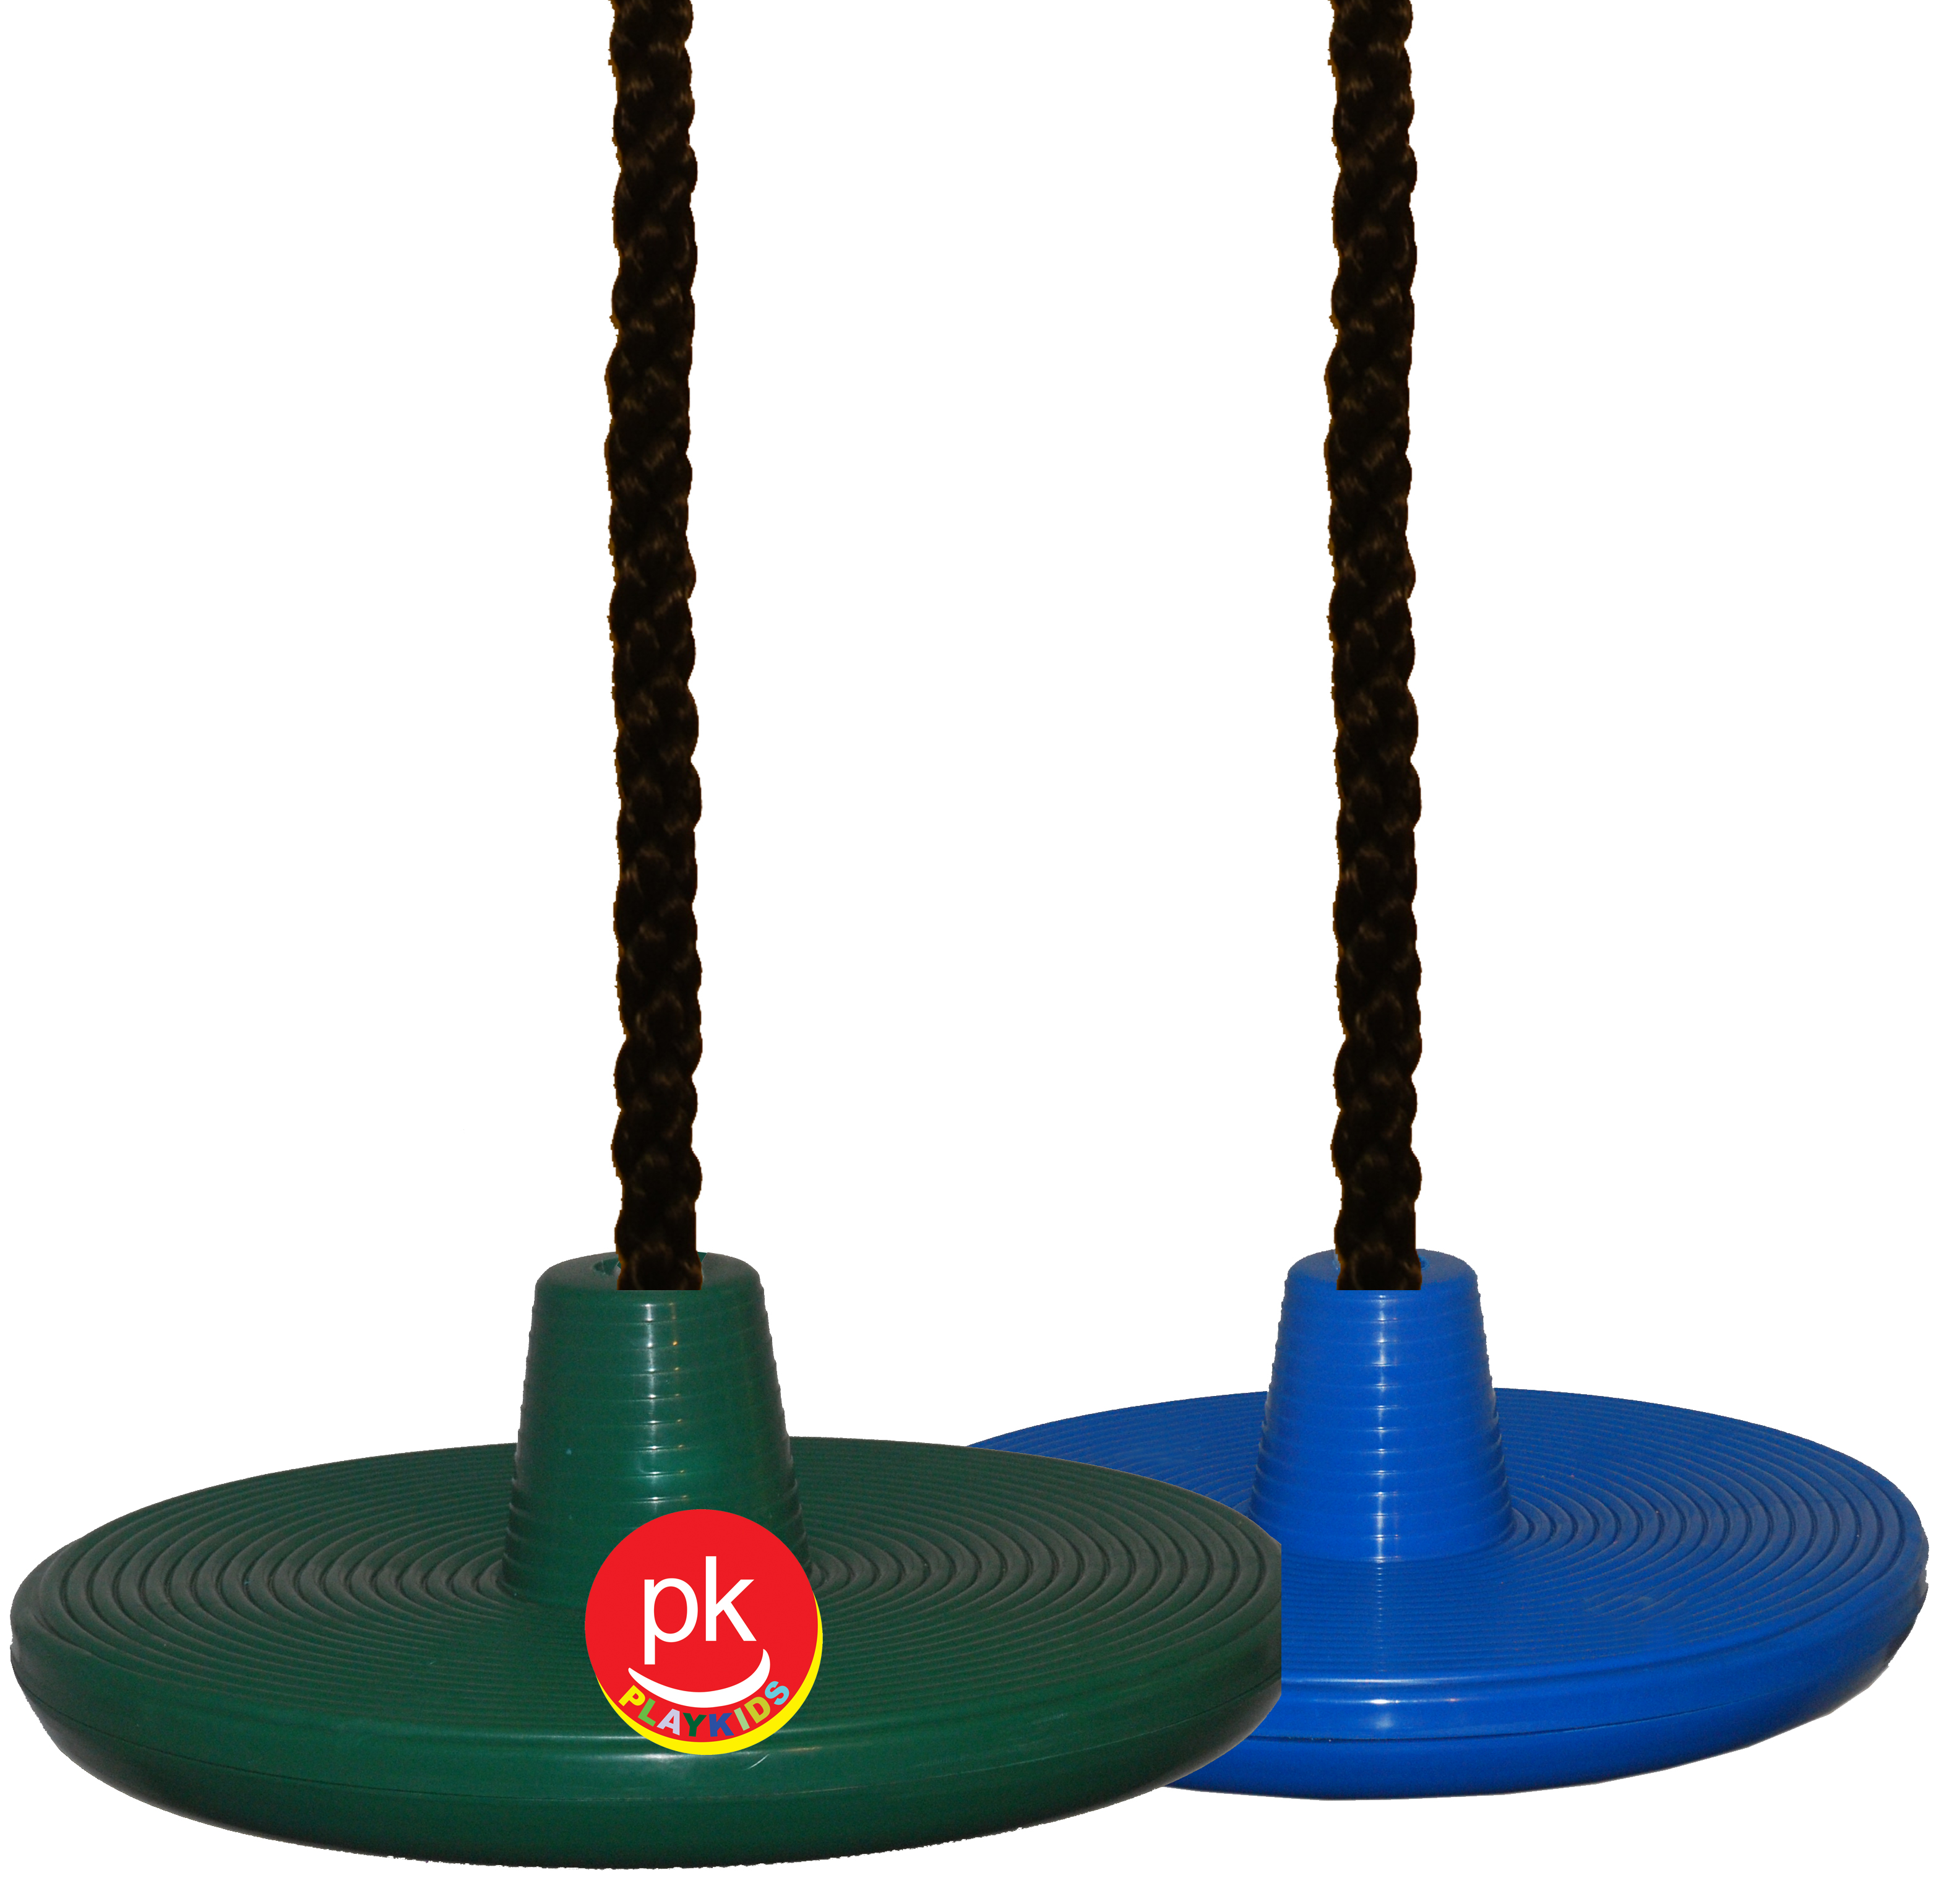 "Playkids wooden Swing Set disk with 3/4"" thick 17' Feet Long  to connect to a tree spin & twist Hardware Porch for Play Set Jungle Gym  Playground in Backyard"